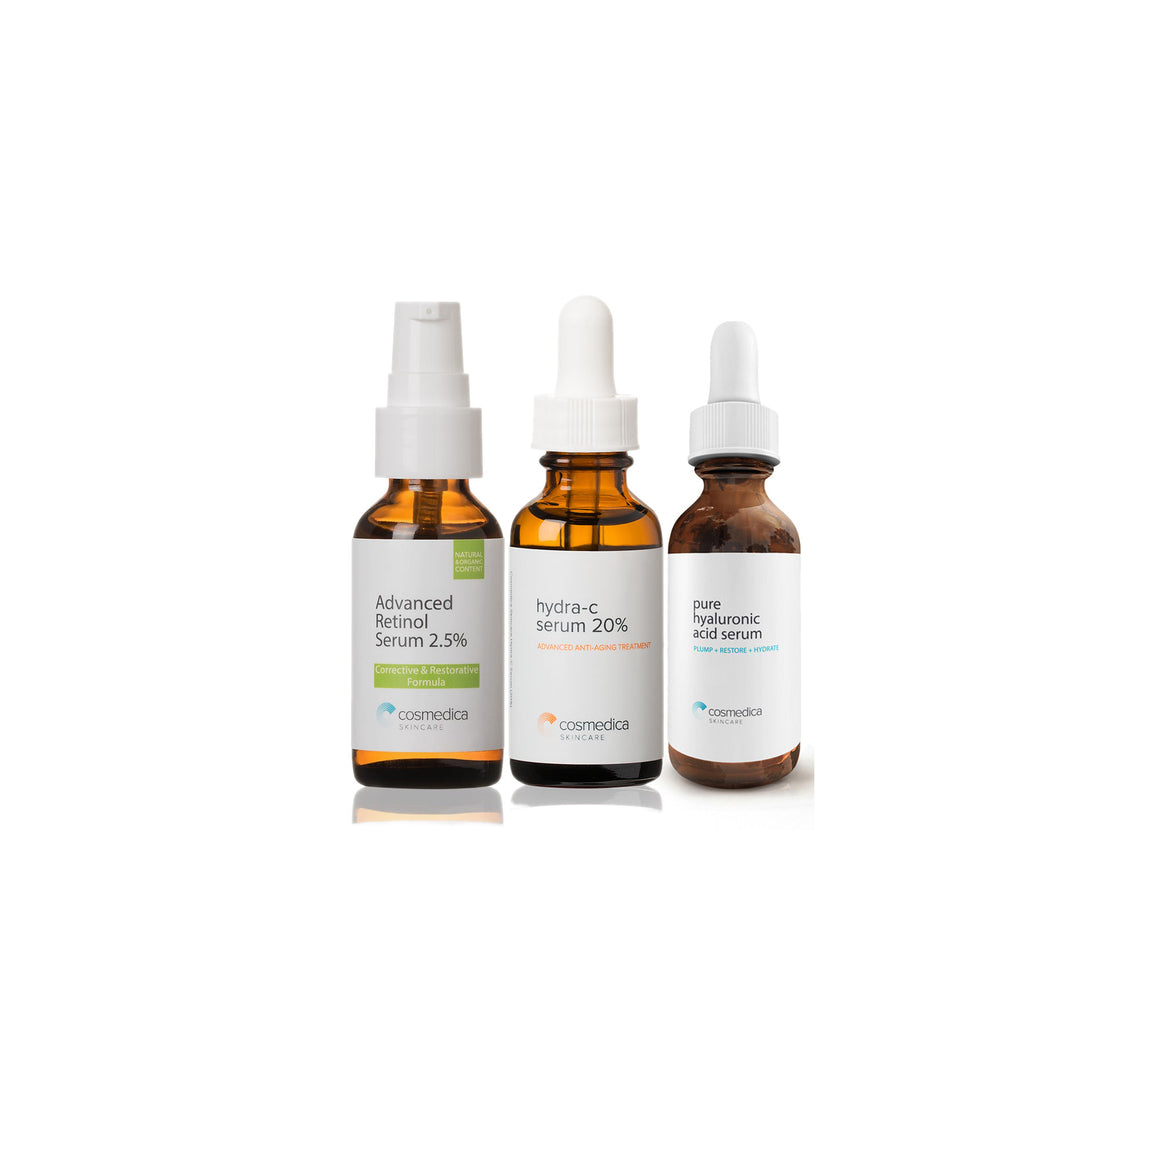 Vitamin C Serum 20% Retinol Serum 2.5% Hyaluronic Acid Serum Combo Set